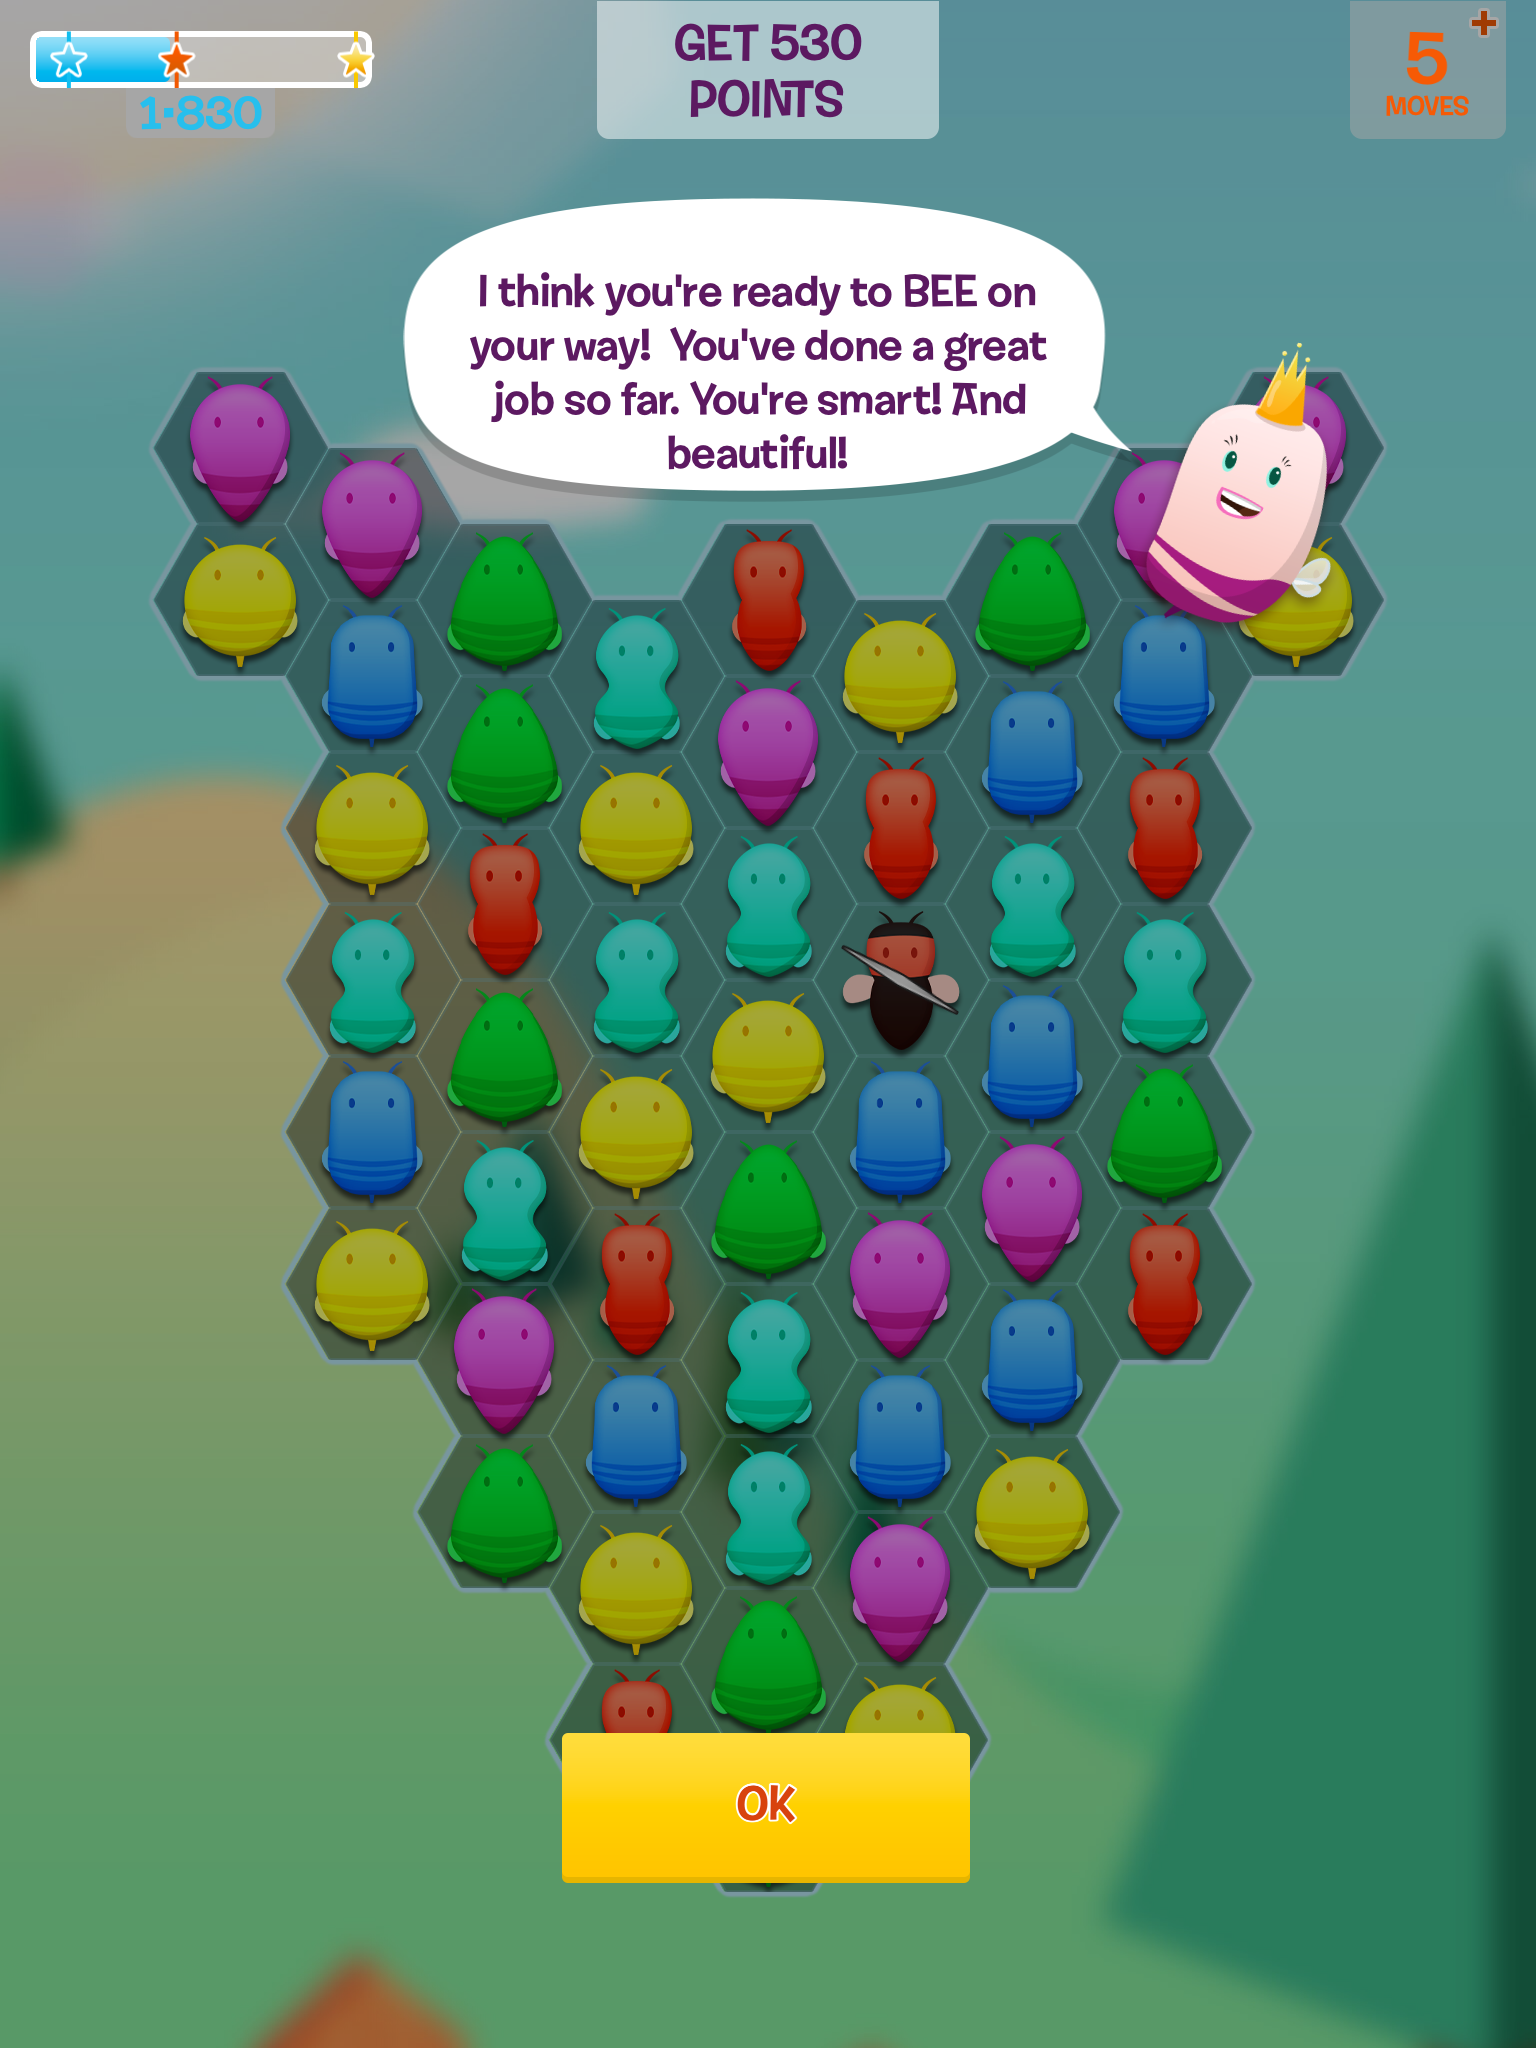 Ftue loading login tutorial screenshots ui tutorial pinterest games inspiration provides mobile game ui screenshots here you can find tutorial ui for angry birds clash of clans hay day candy crush saga and many baditri Choice Image